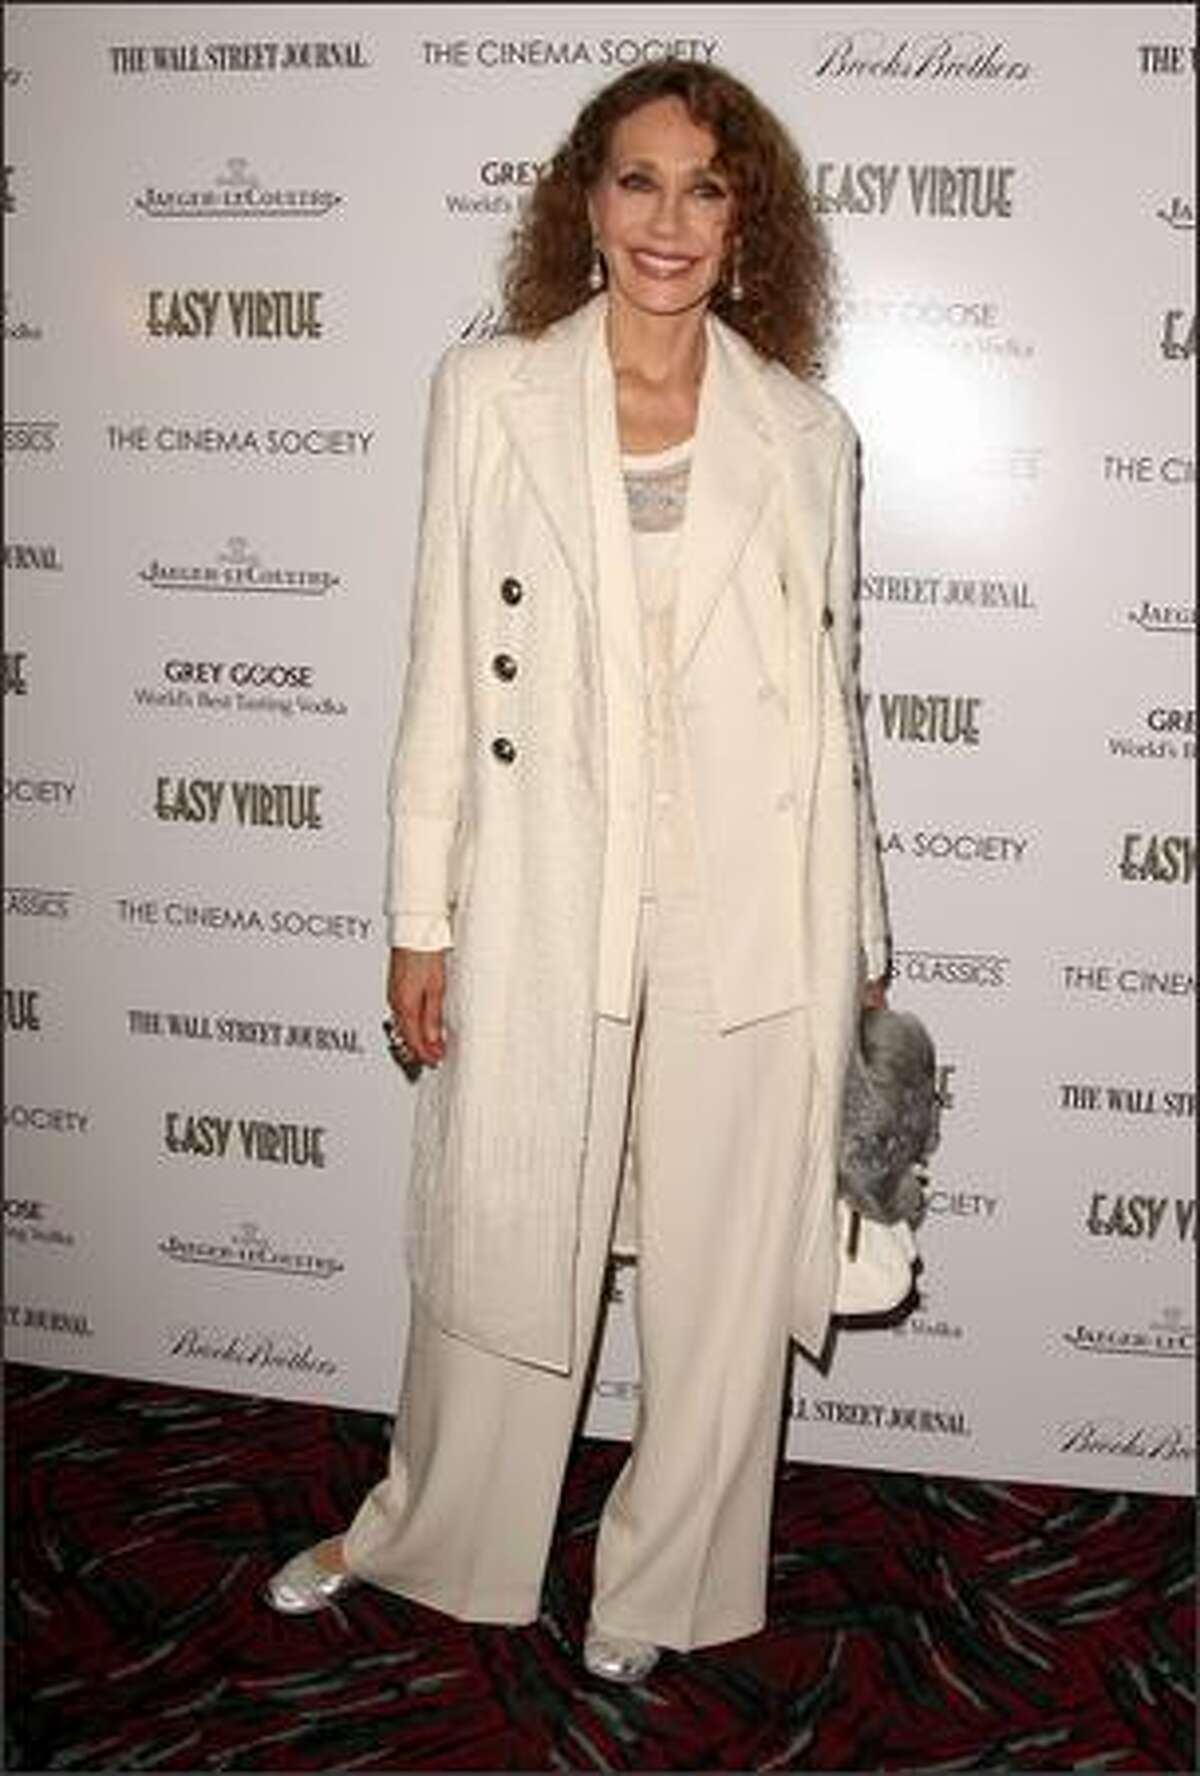 Marisa Berenson attends a screening of